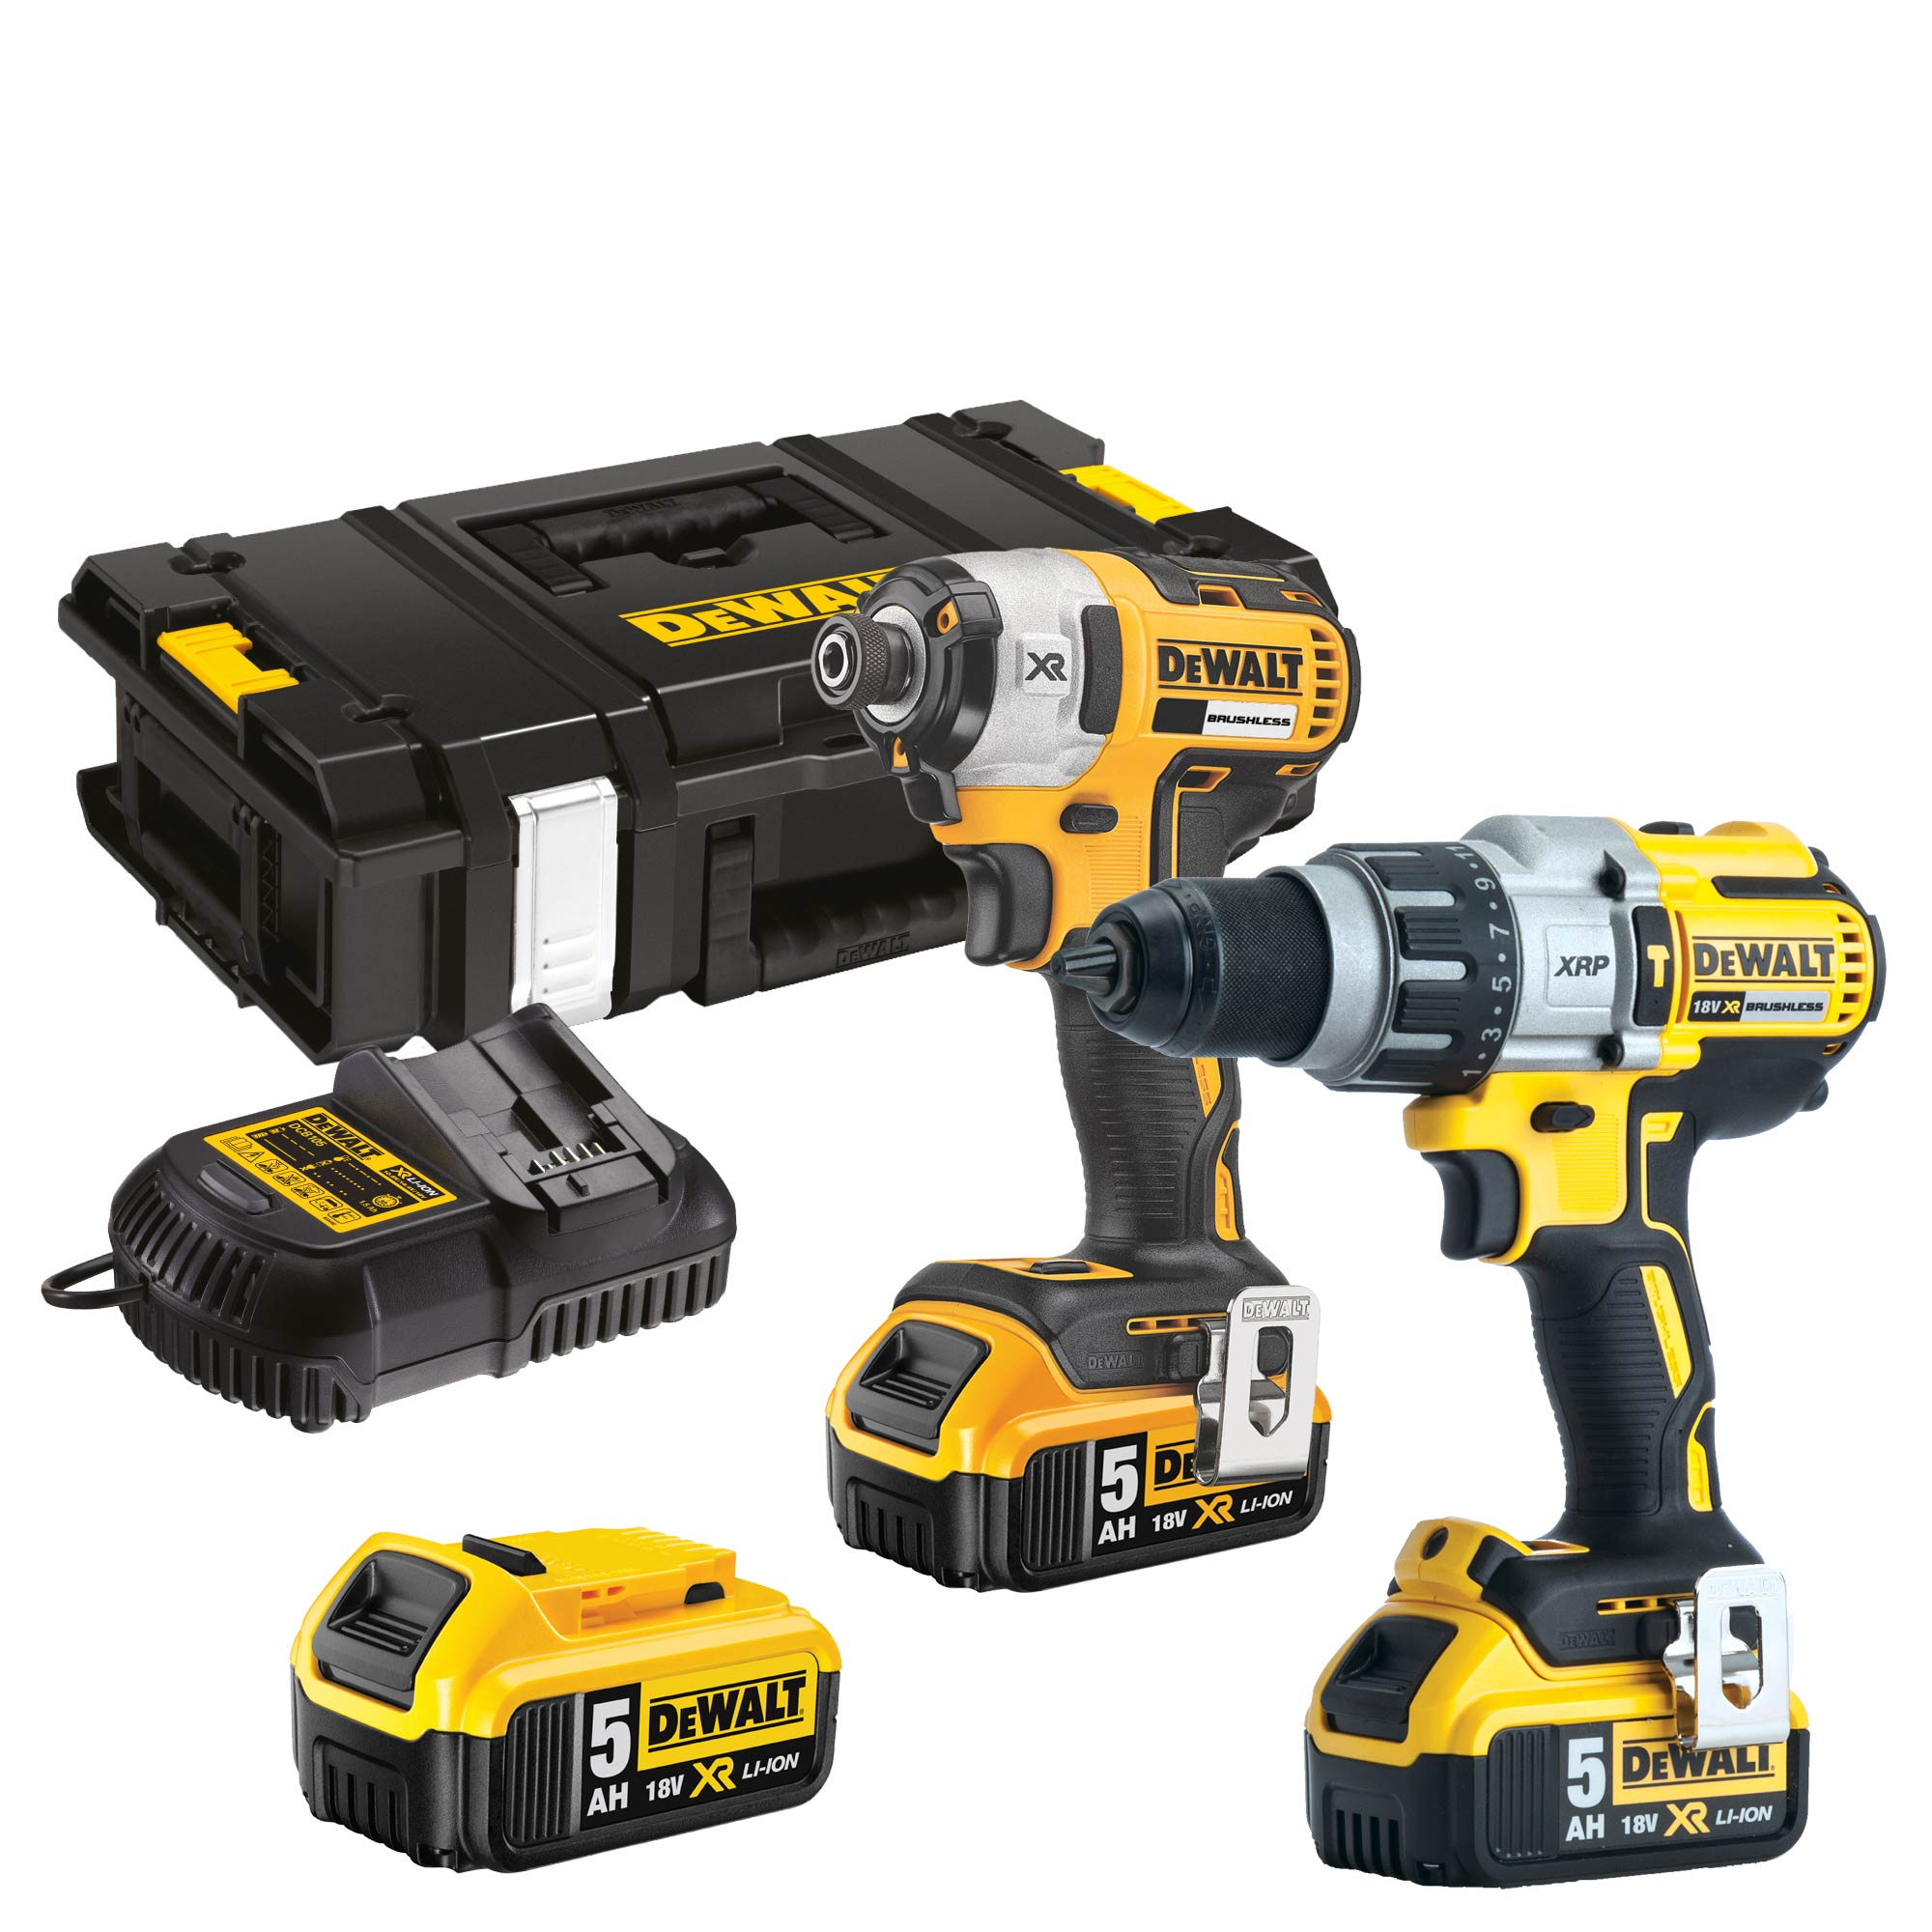 dewalt dck276p3 dewalt 18v xr 5 0ah li ion brushless 2. Black Bedroom Furniture Sets. Home Design Ideas